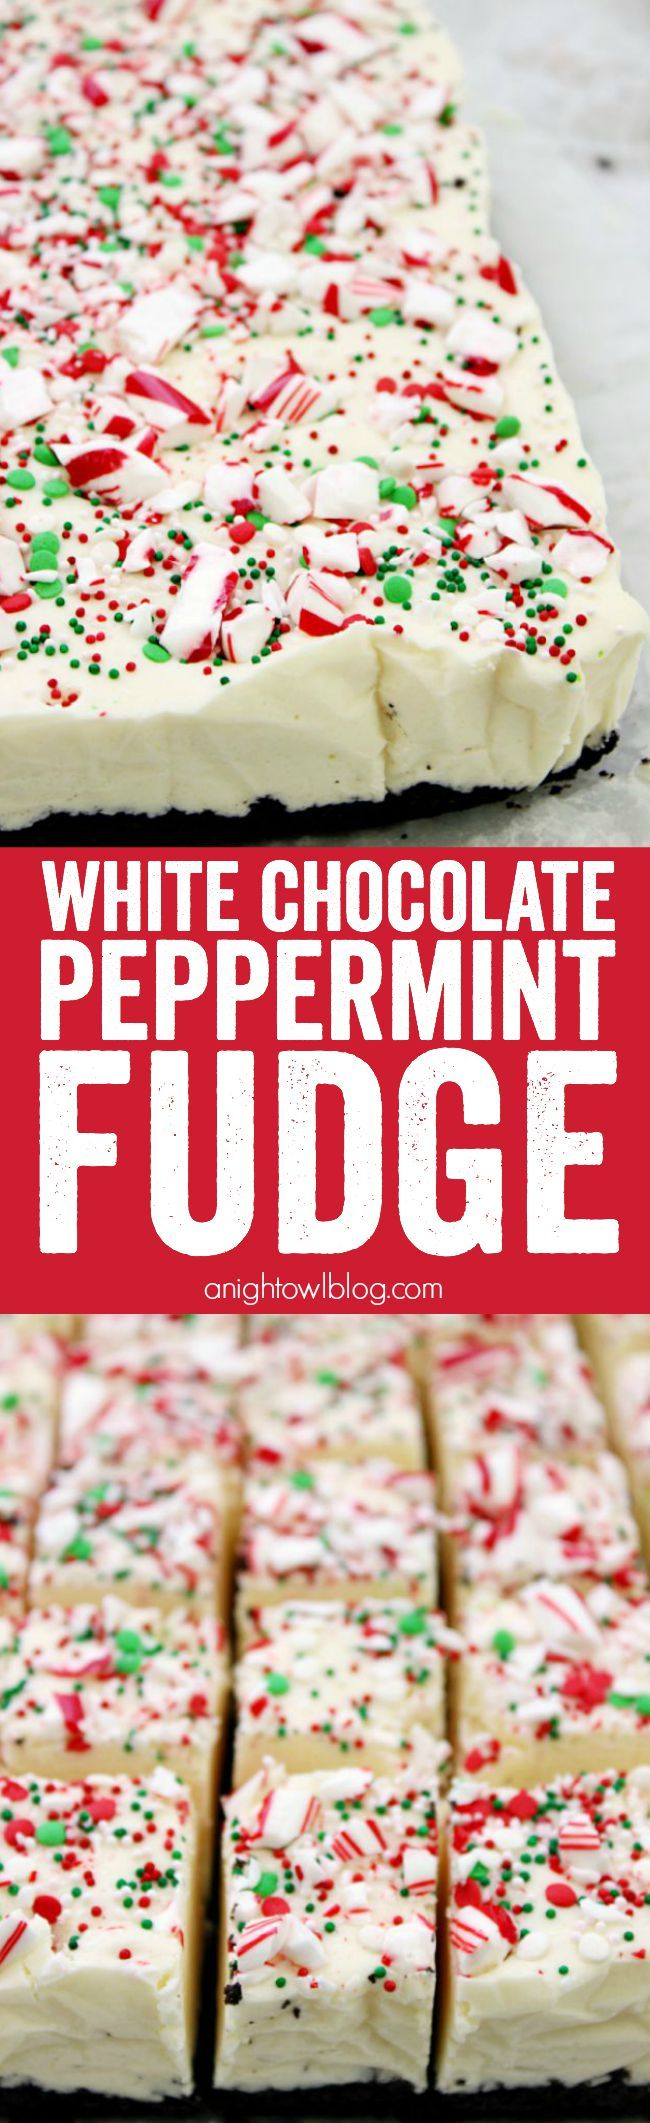 White Chocolate Peppermint Fudge - a decadent, but easy, fudge recipe perfect for the Winter season. It also makes a great gift idea!